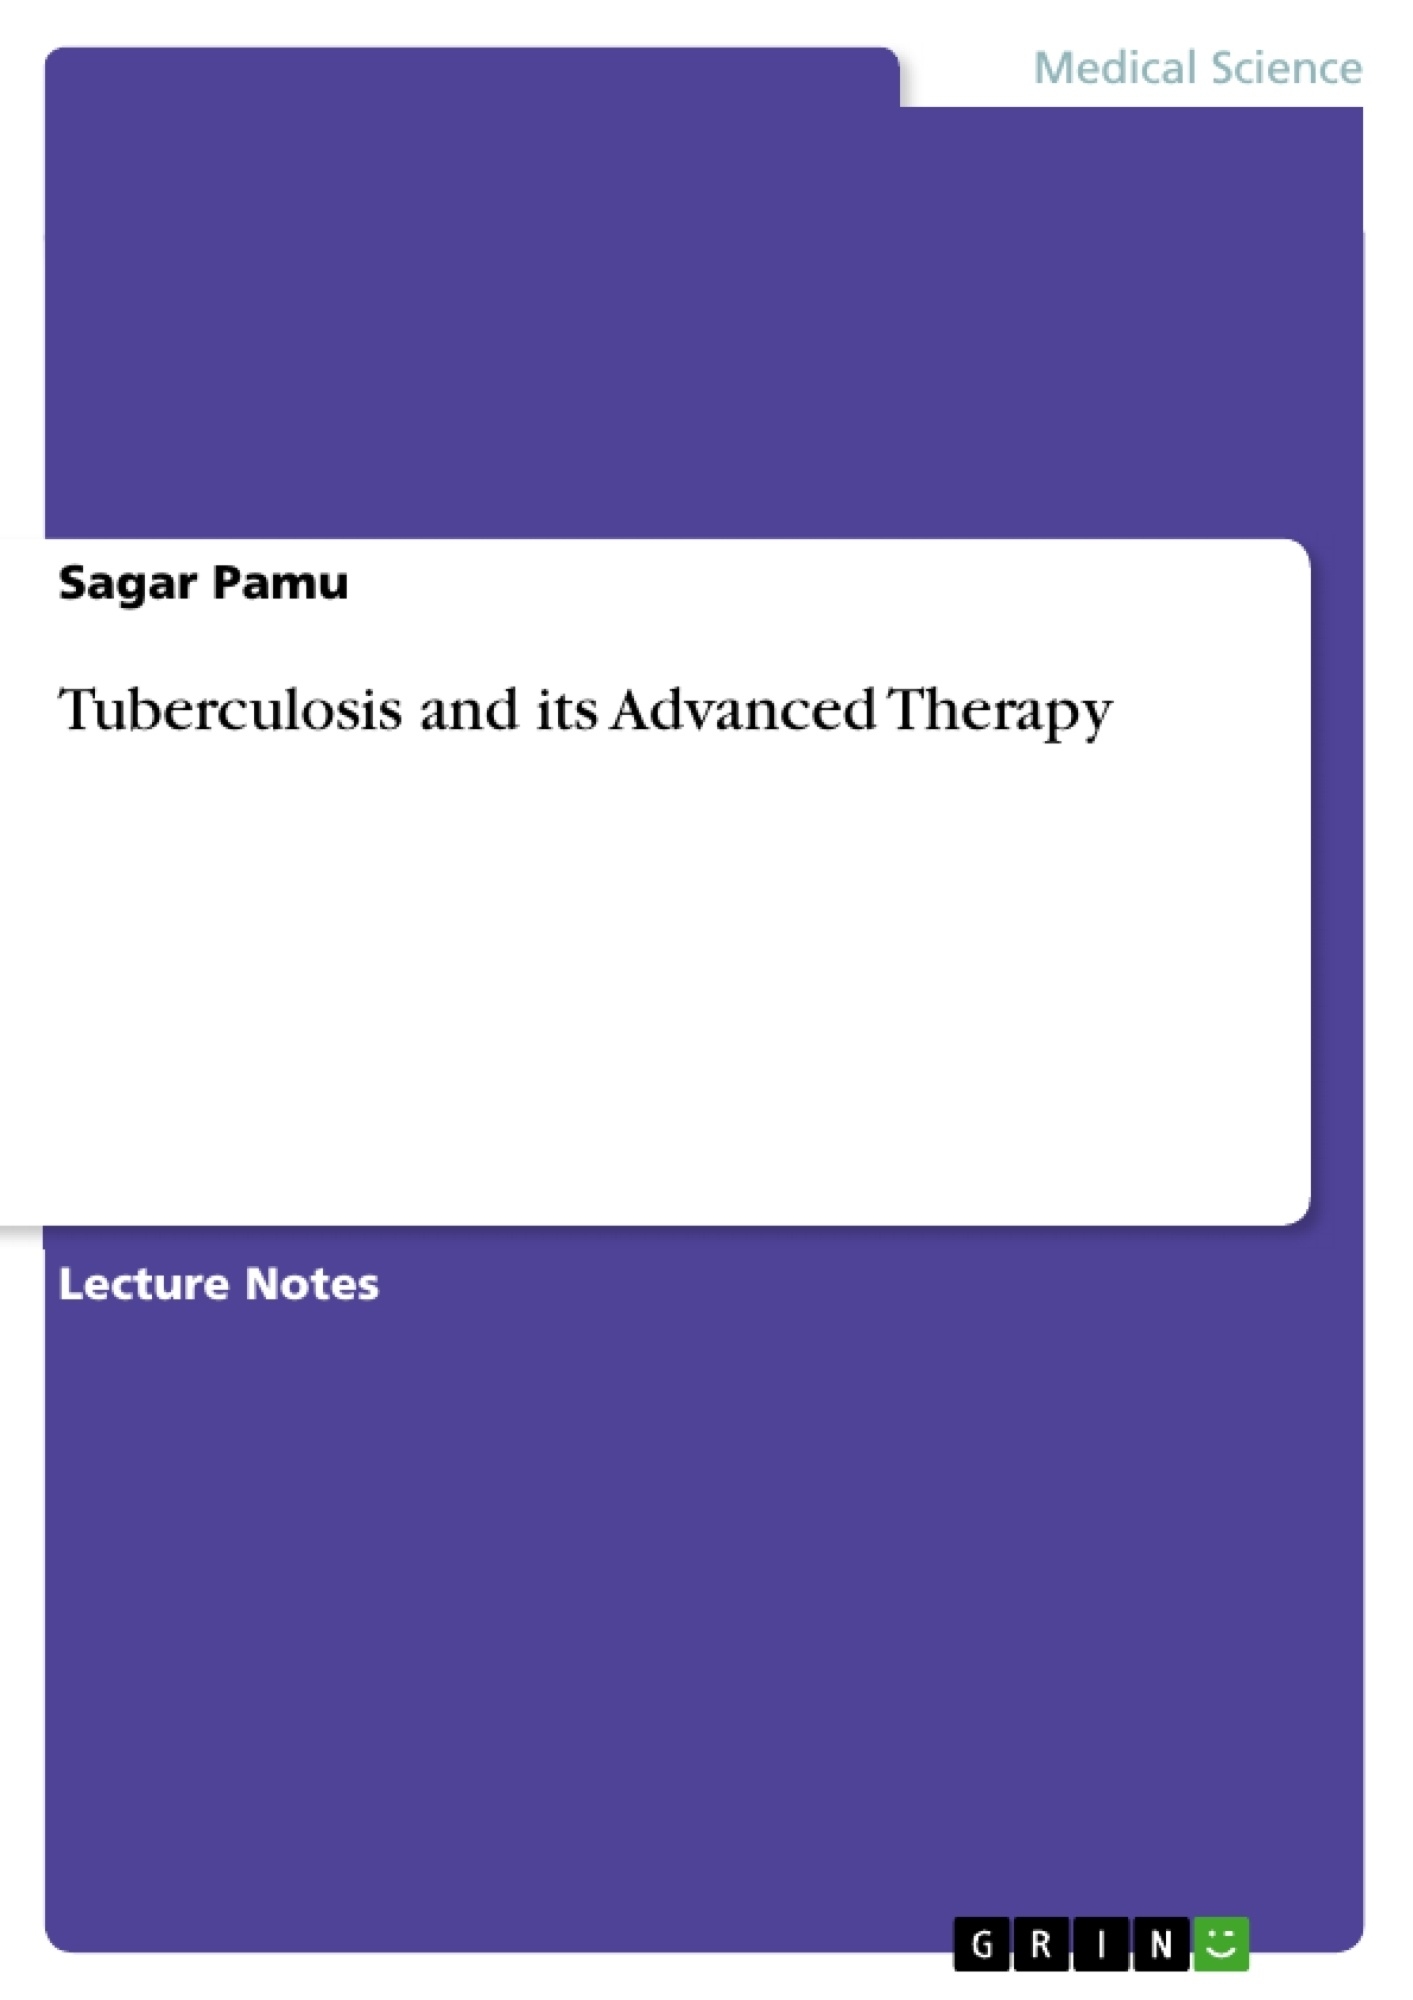 Title: Tuberculosis and its Advanced Therapy